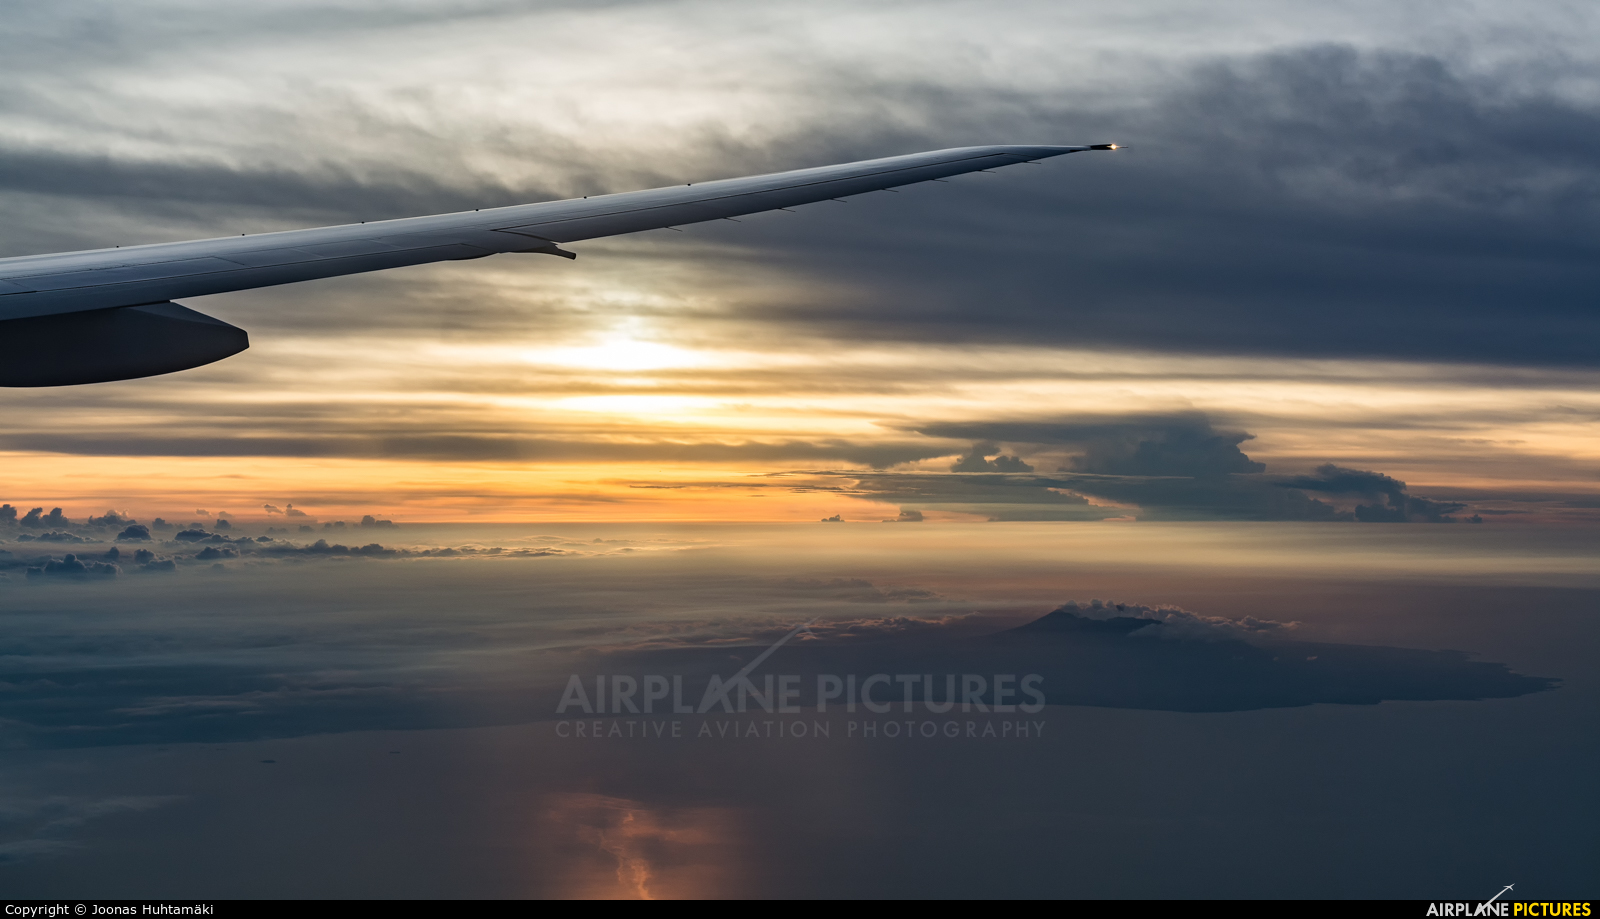 Cathay Pacific - aircraft at In Flight - Indonesia